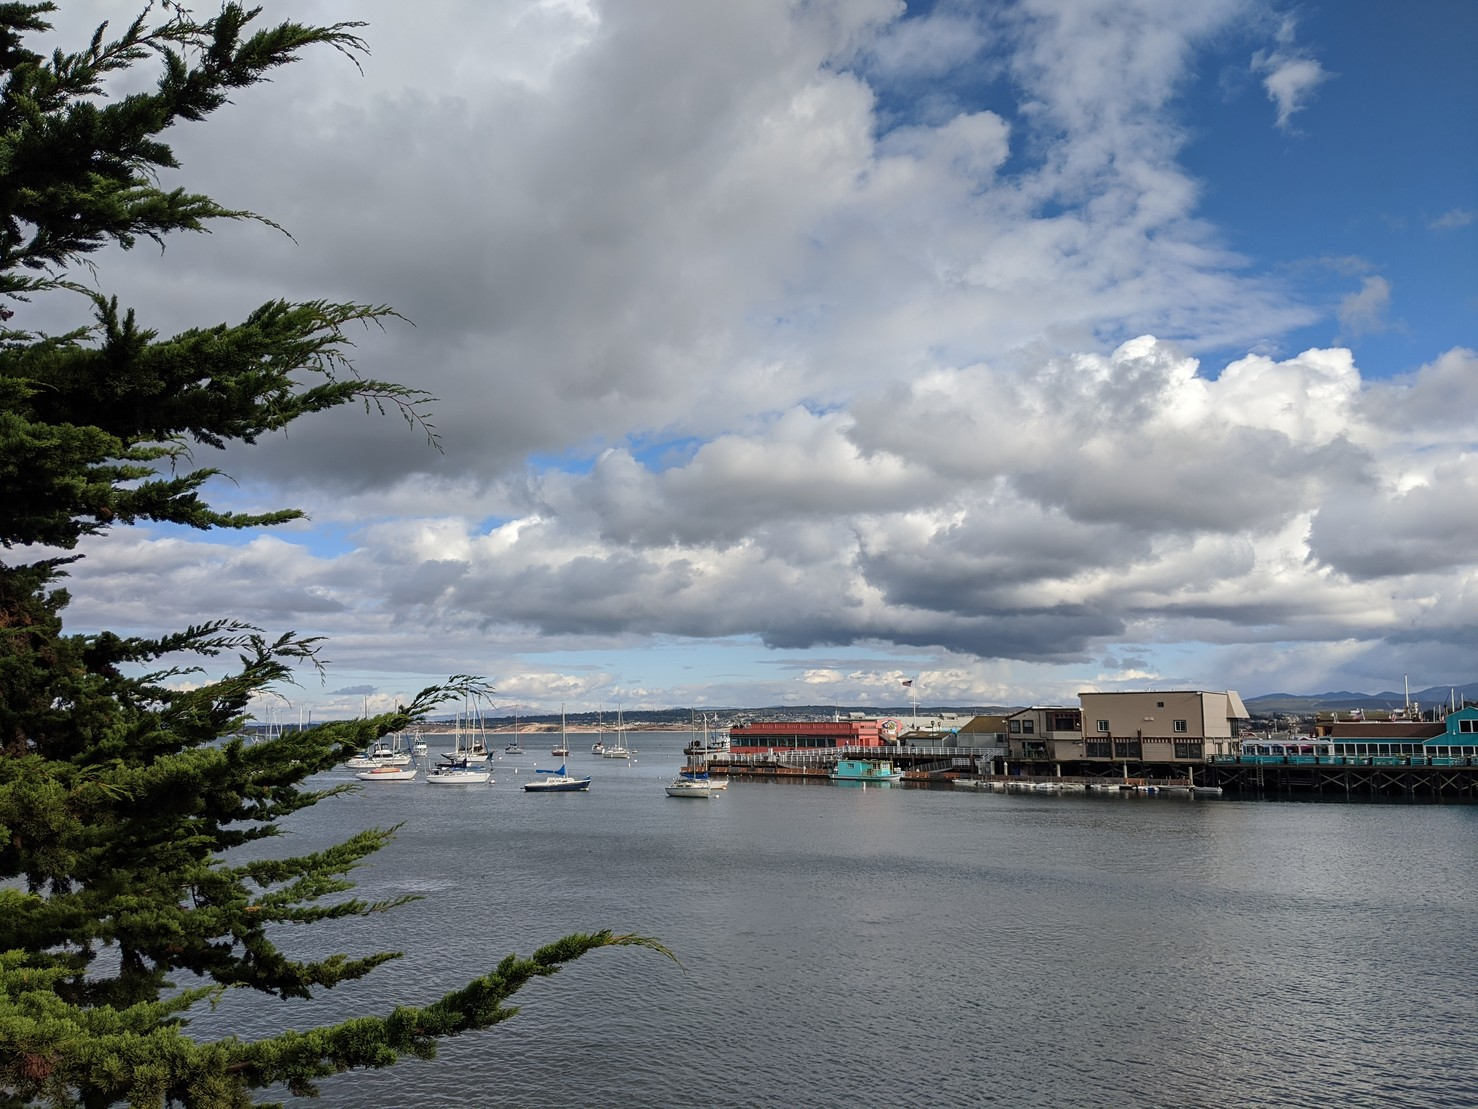 Clouds over Monterey Bay.#photo #MontereyBay #California